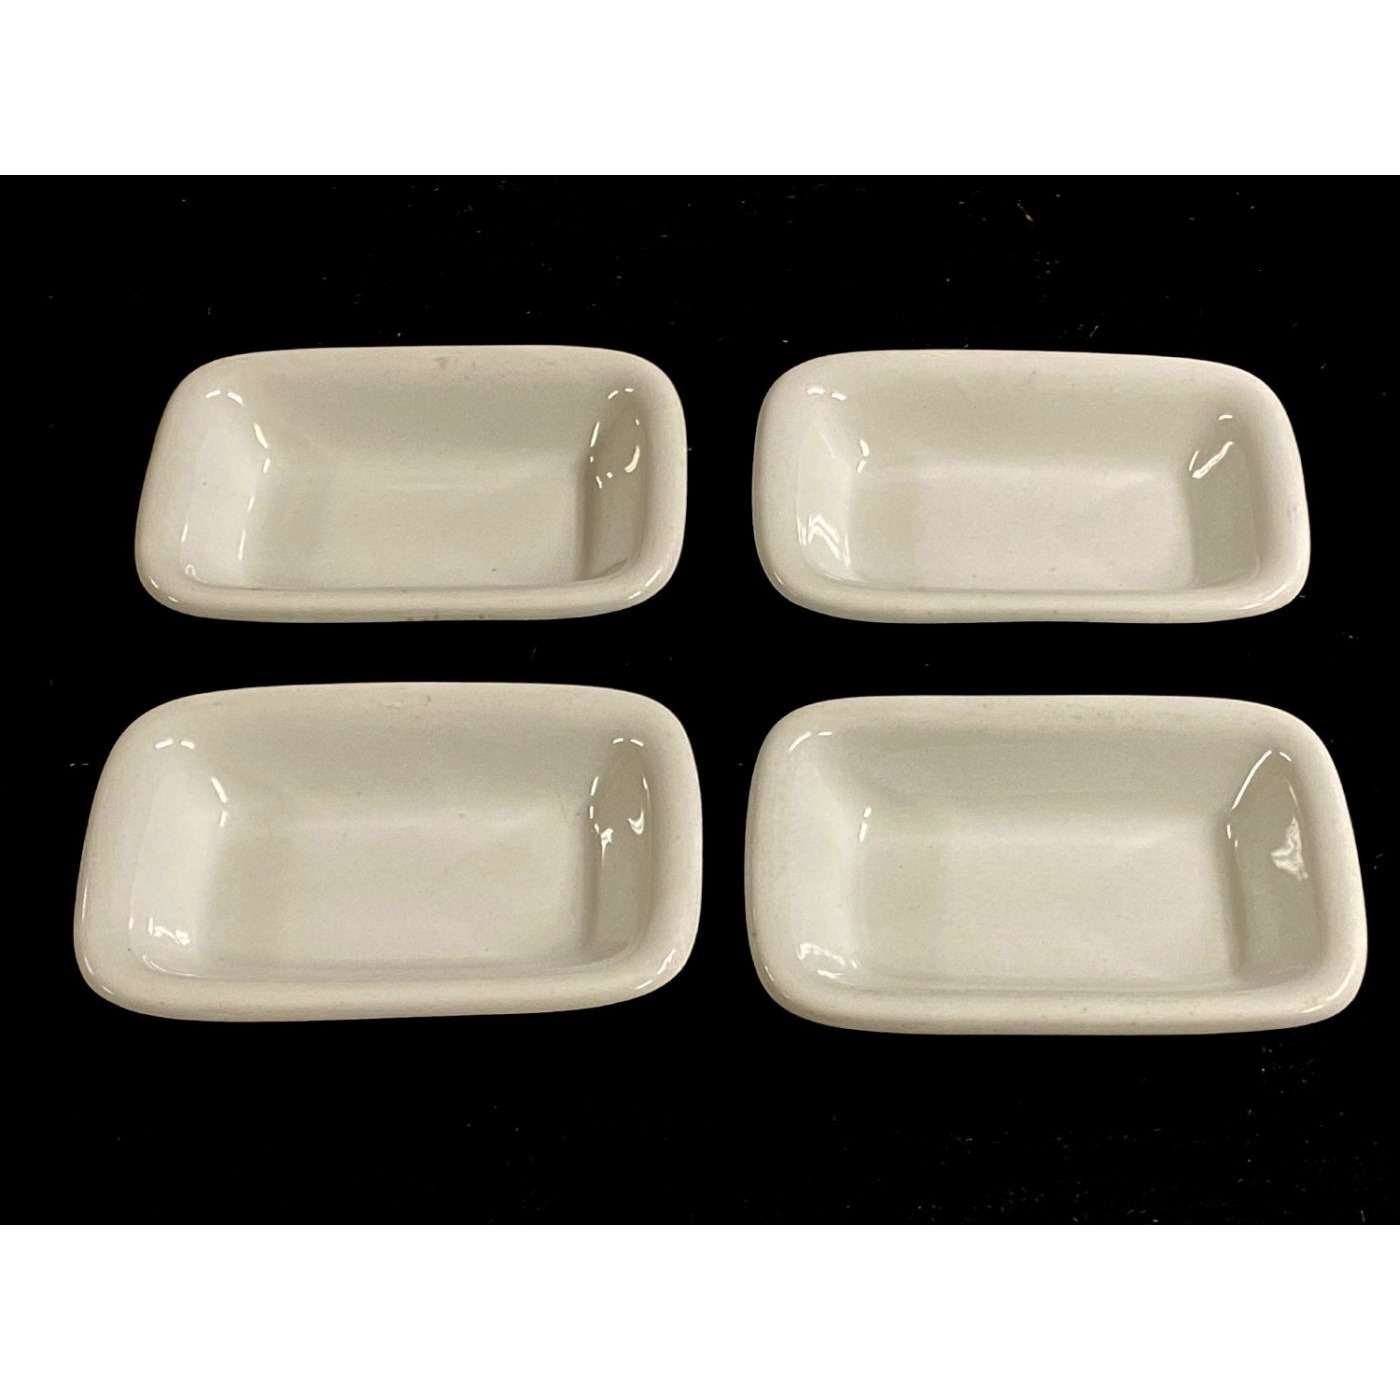 Unusual Set of Four Rectangular Small Bowls - Meakin